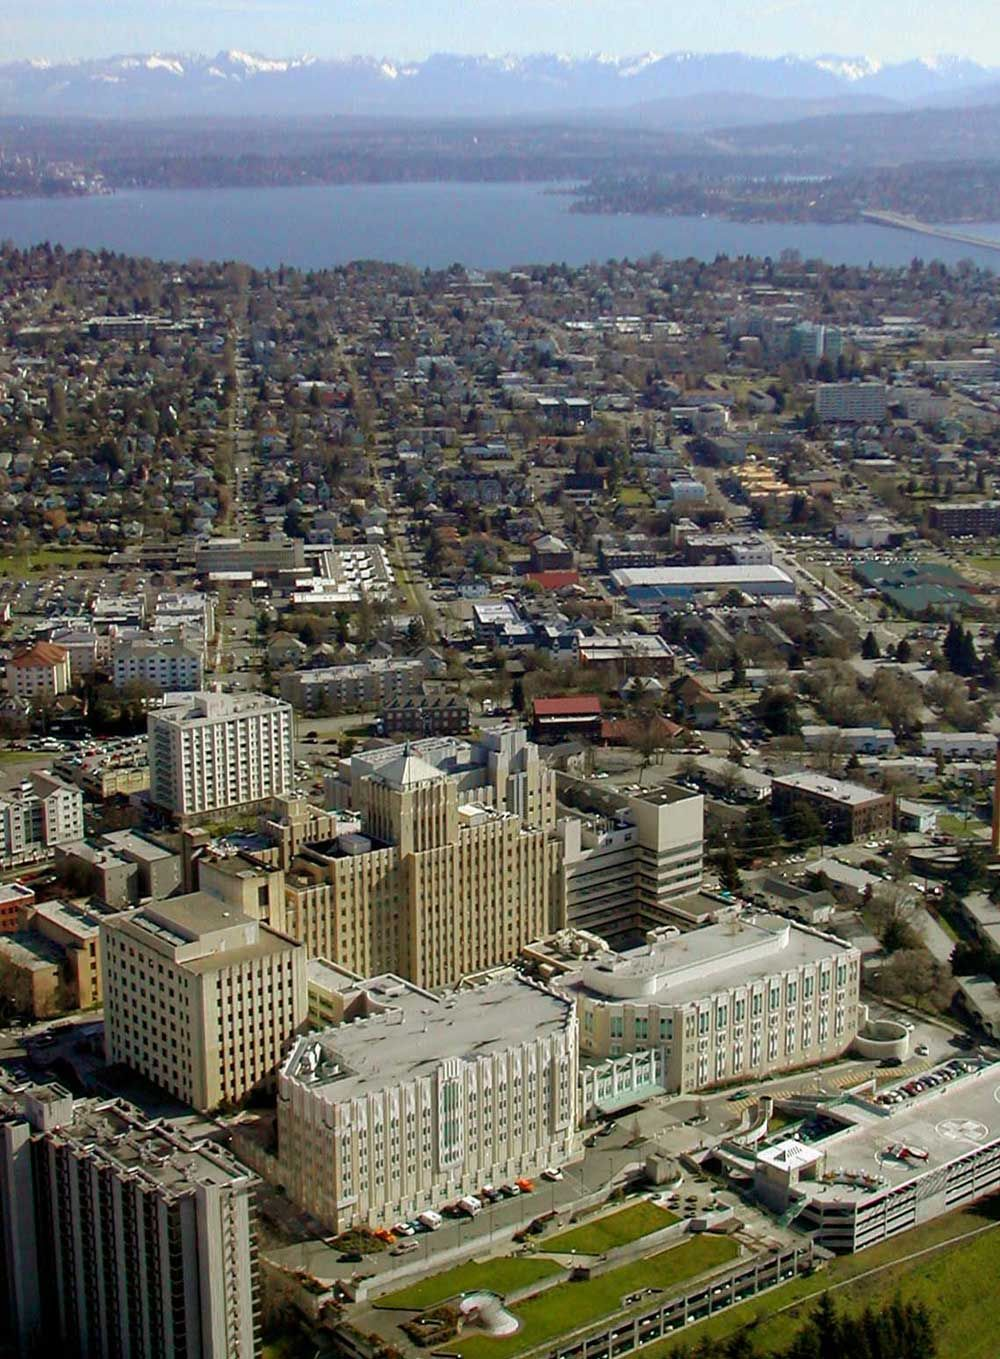 Harborview medical center has a long history of caring for